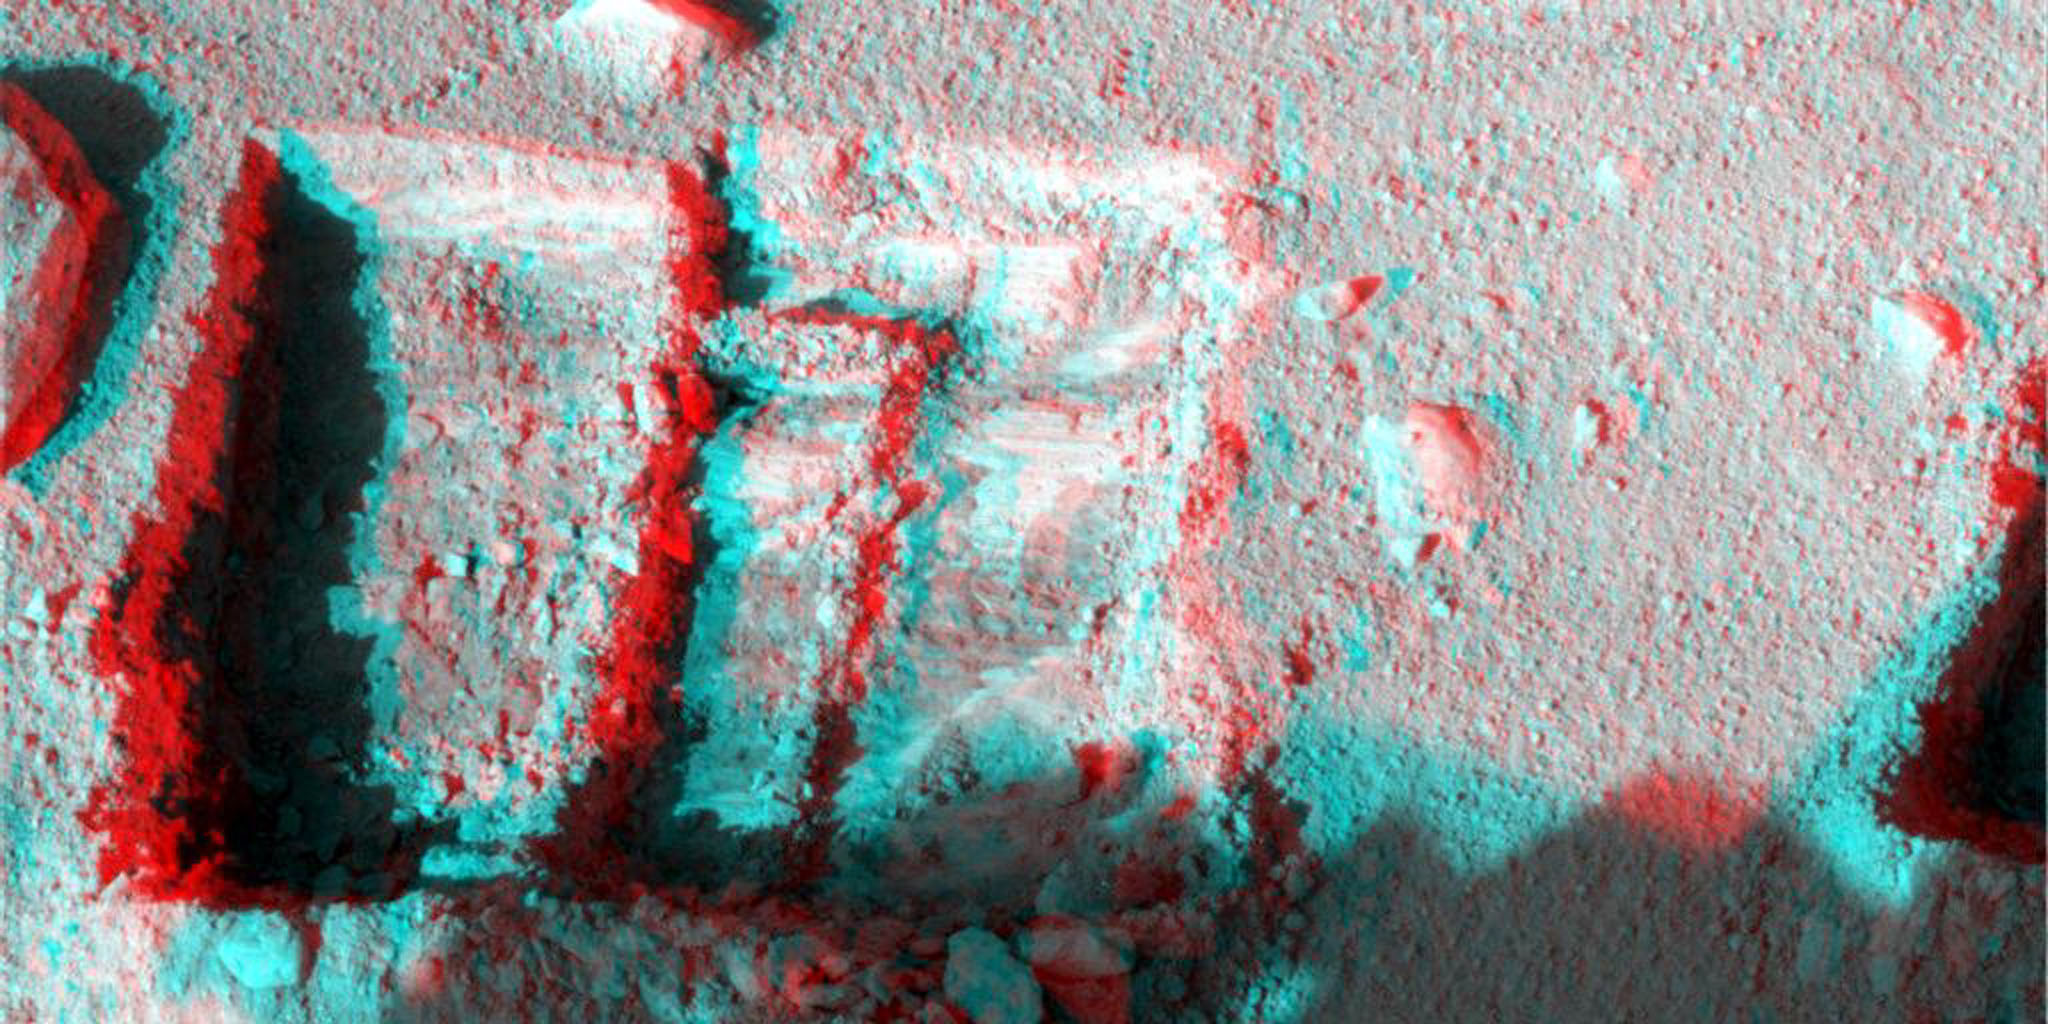 This anaglyph was taken by NASA's Phoenix Mars Lander's Surface Stereo Imager Oct. 7, 2008. The anaglyph highlights the depth of the trench, informally named 'La Mancha,' and reveals the ice layer beneath the soil surface. 3-D glasses are necessary.